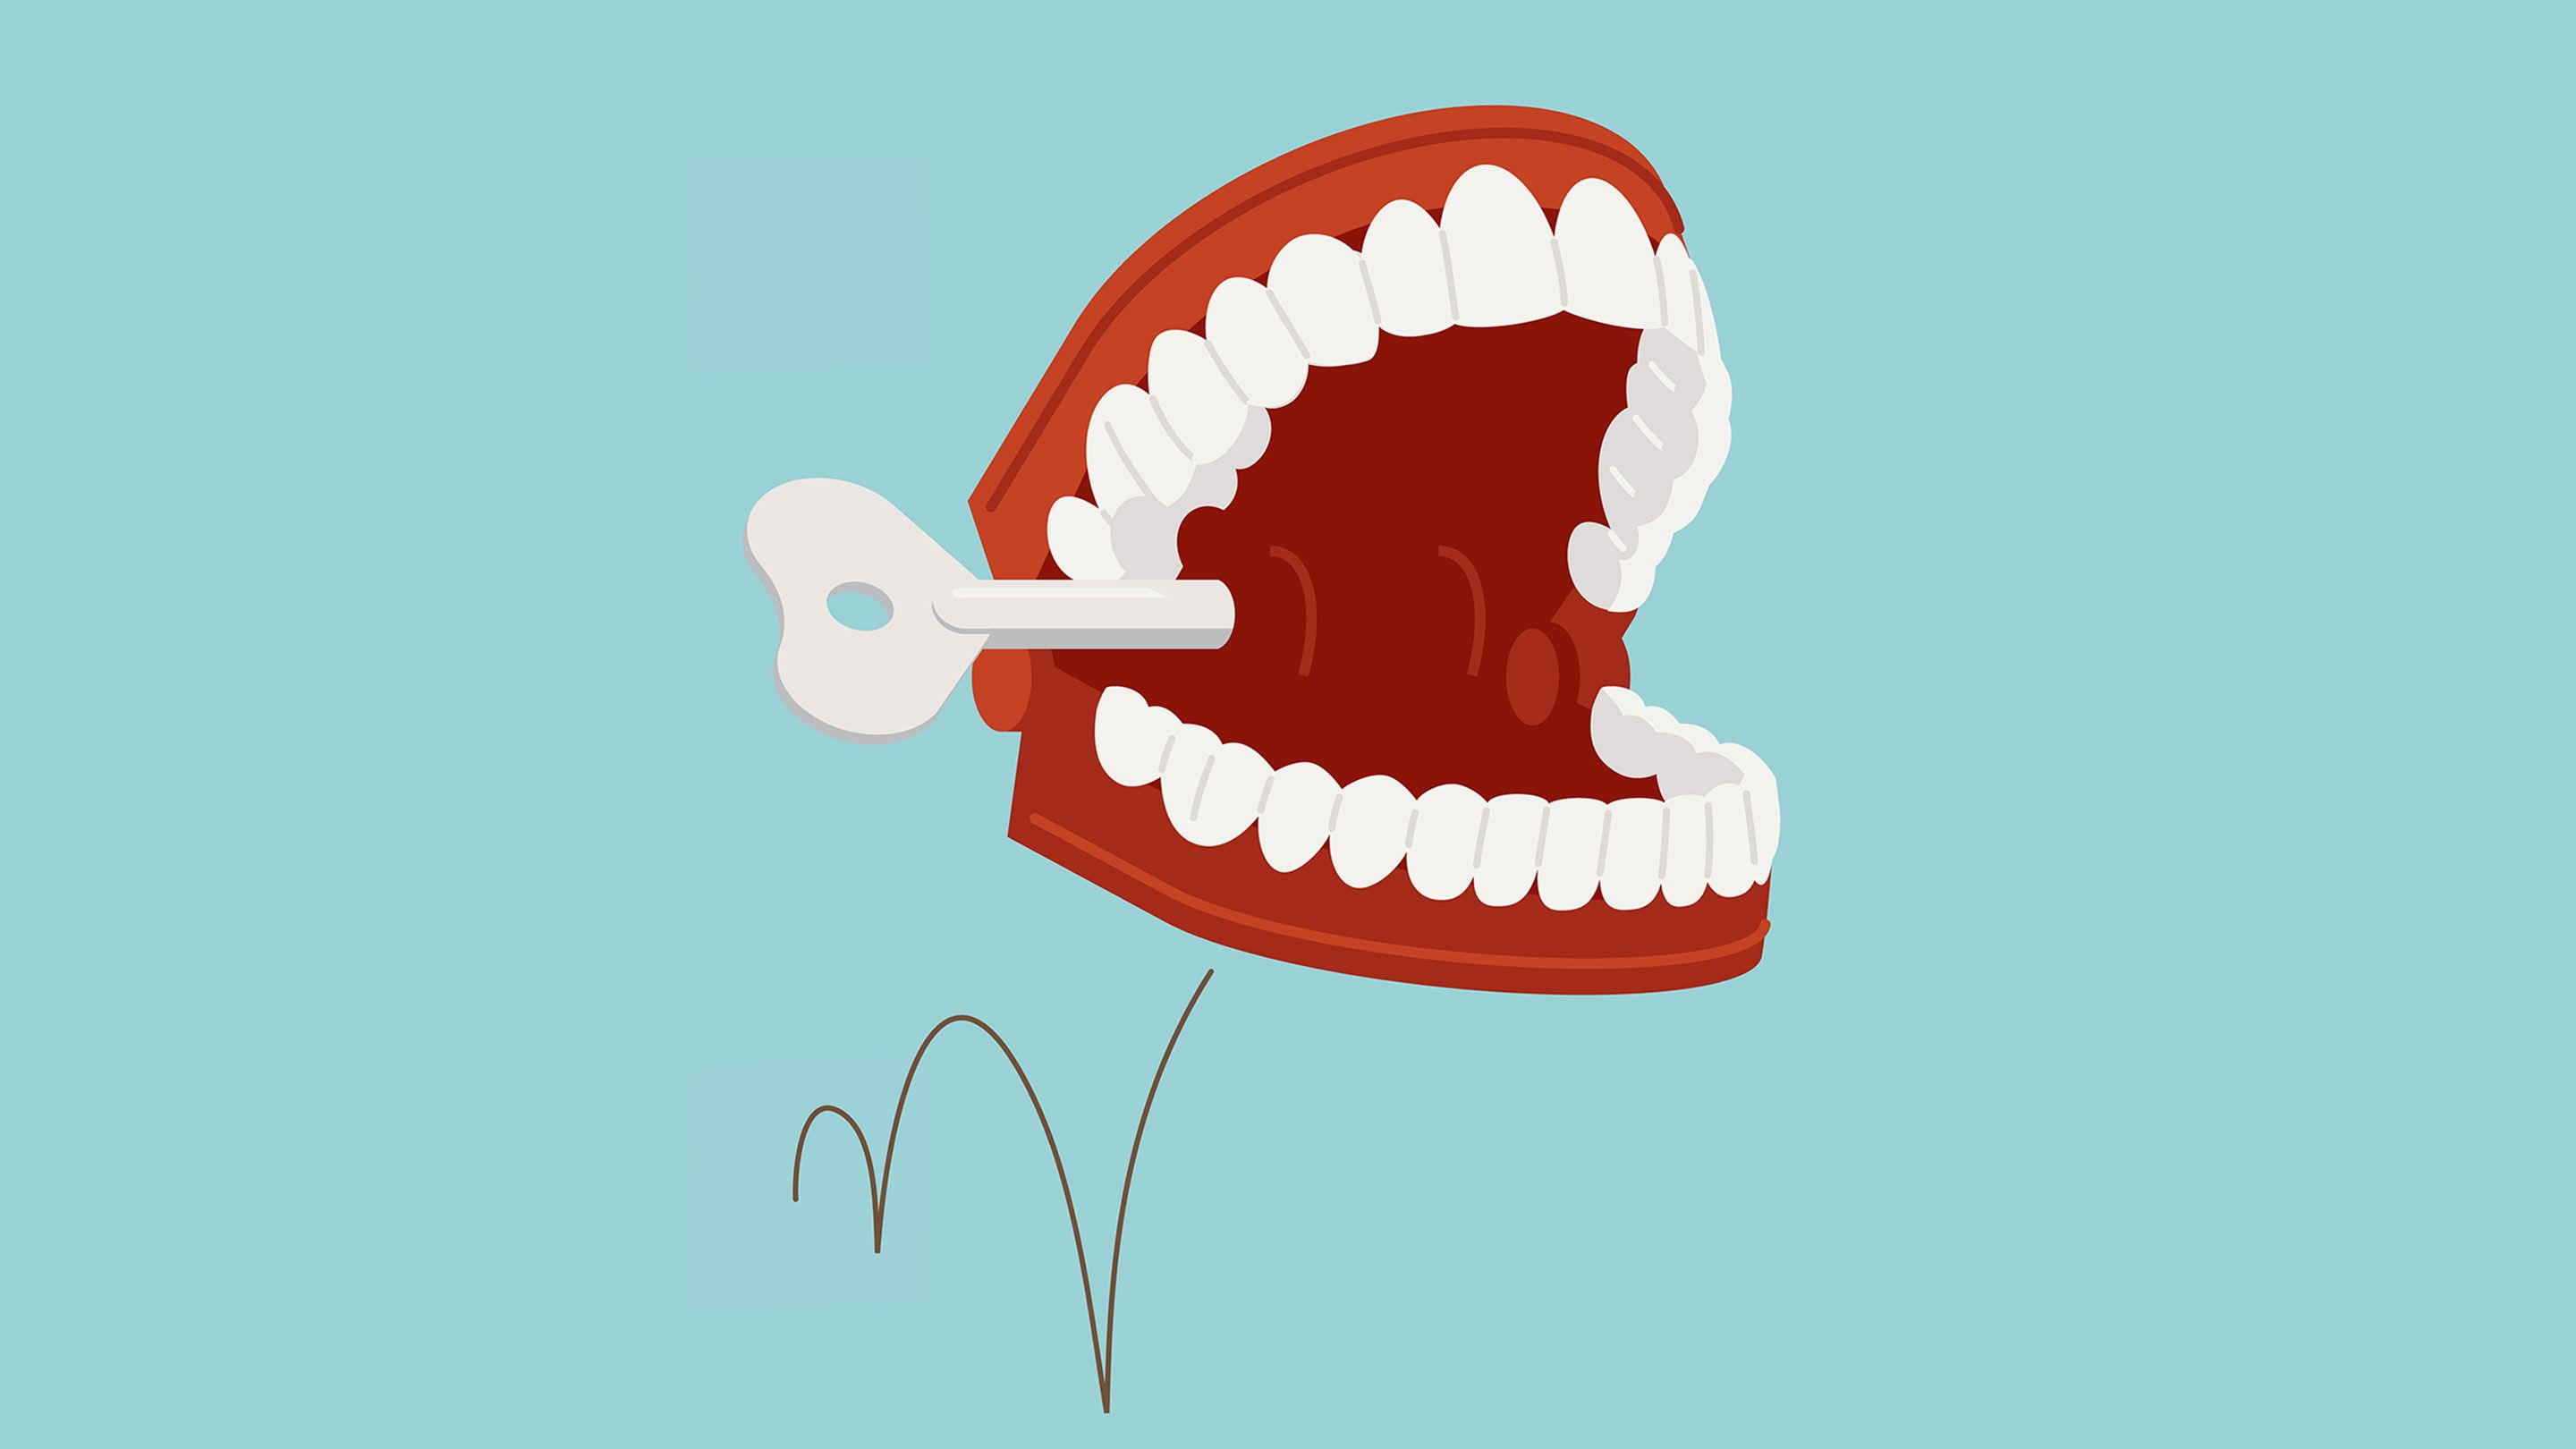 illustration of chattering-teeth windup toy